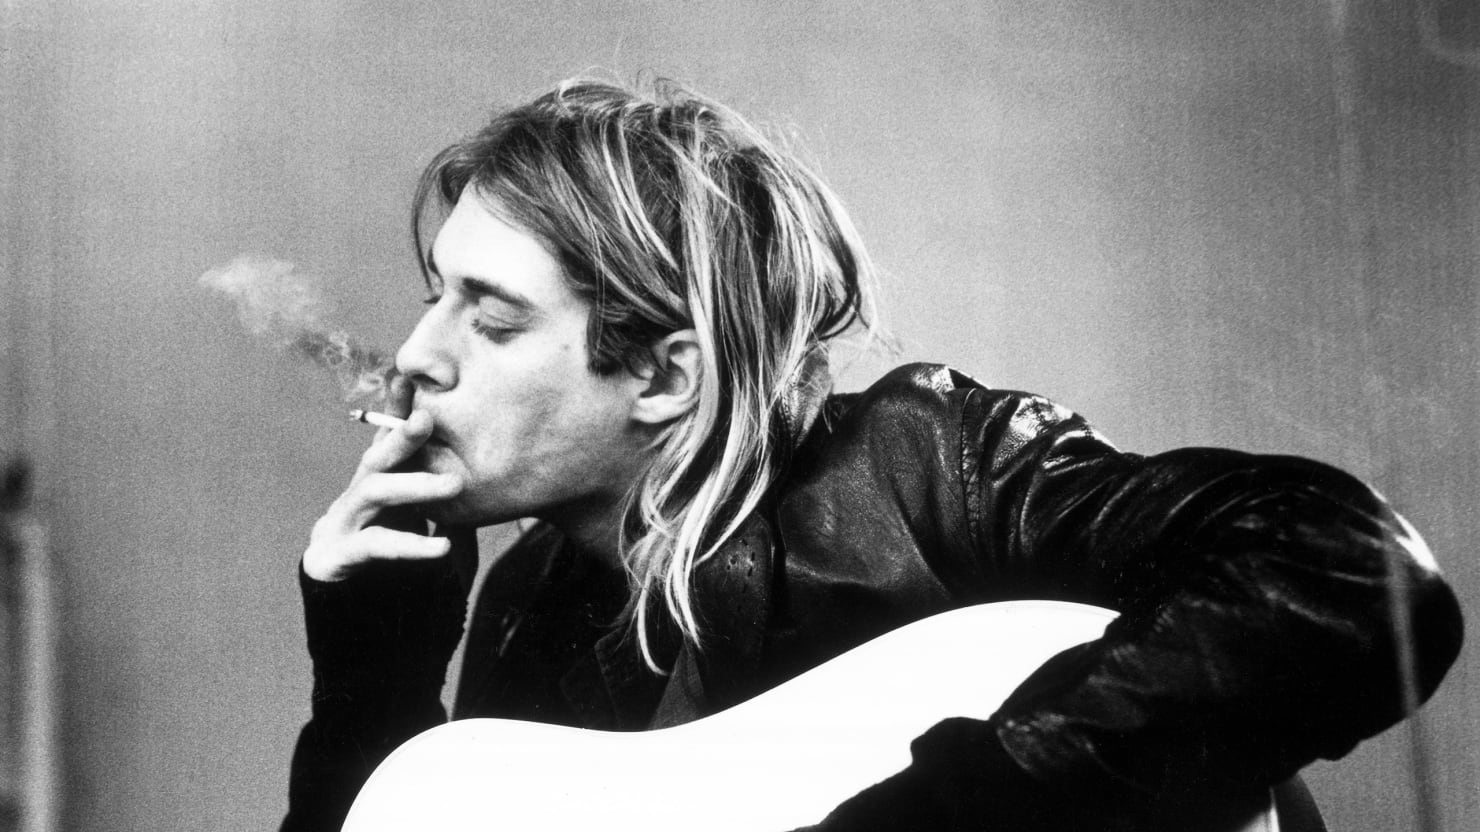 Kurt Cobain's Moody 1988 Mixtape: A Wormhole into the Strange Mind of a Rock Legend